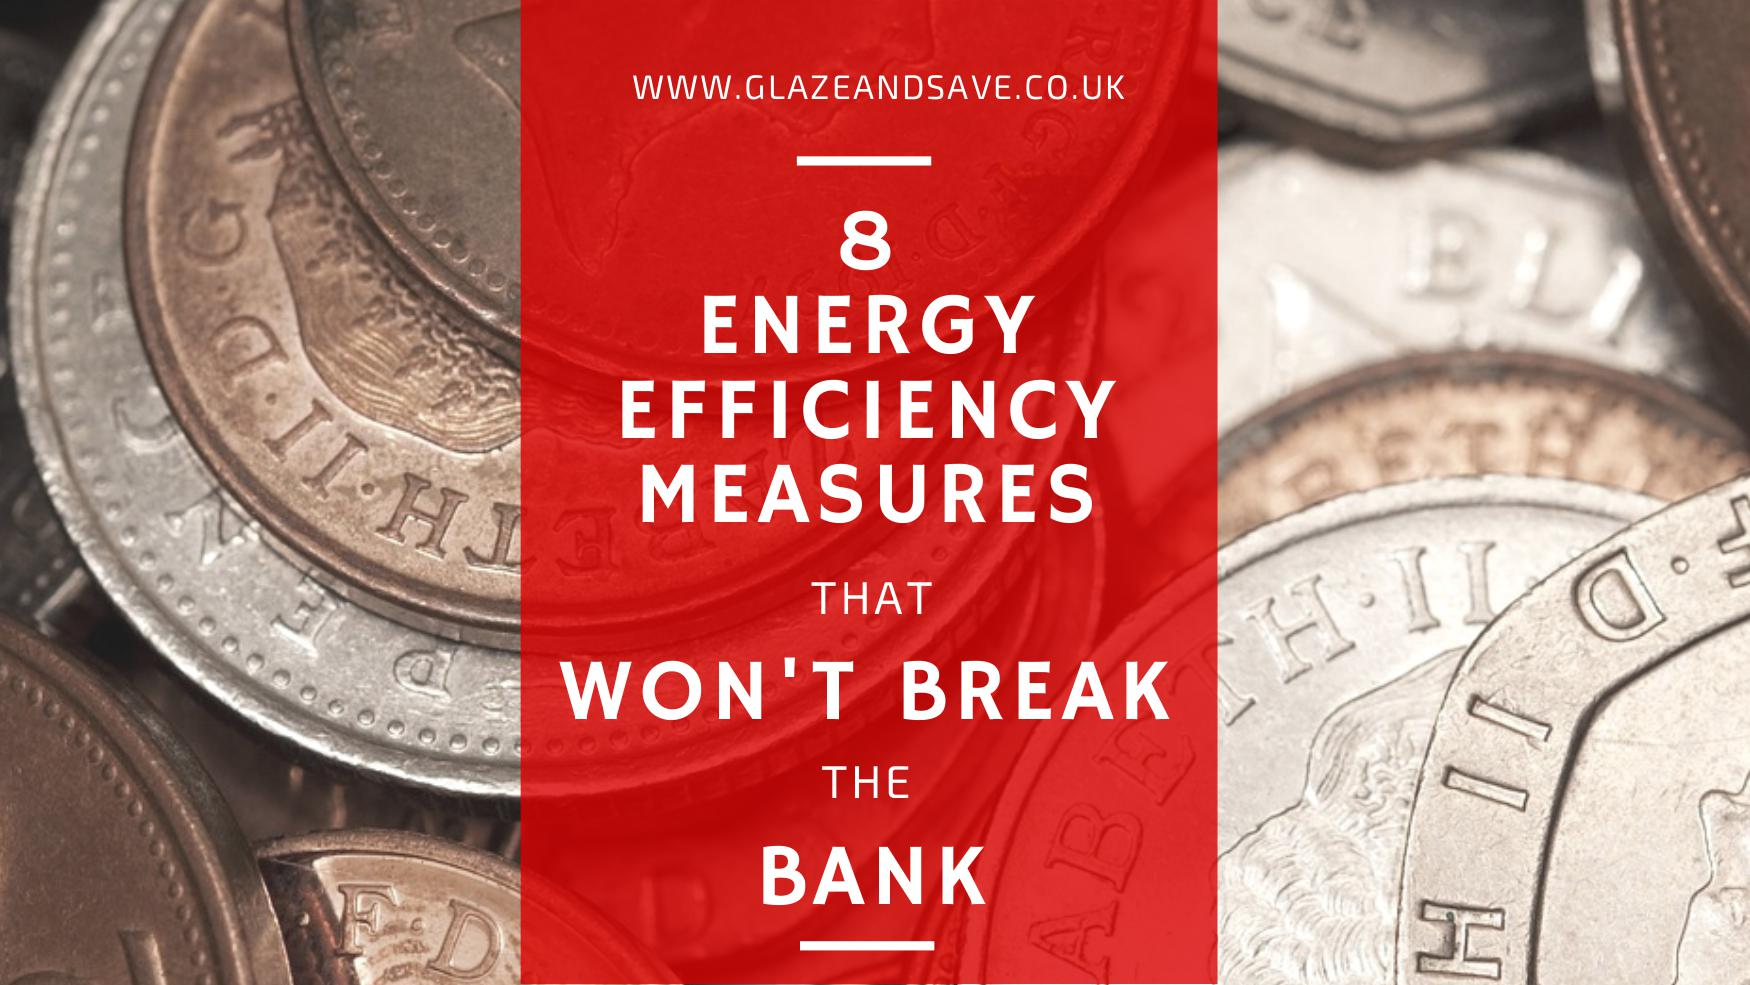 8 energy efficiency measures that wont break the bank by Glaze & Save bespoke magnetic secondary glazing and innovative draught proofing systems based in Perth UK.